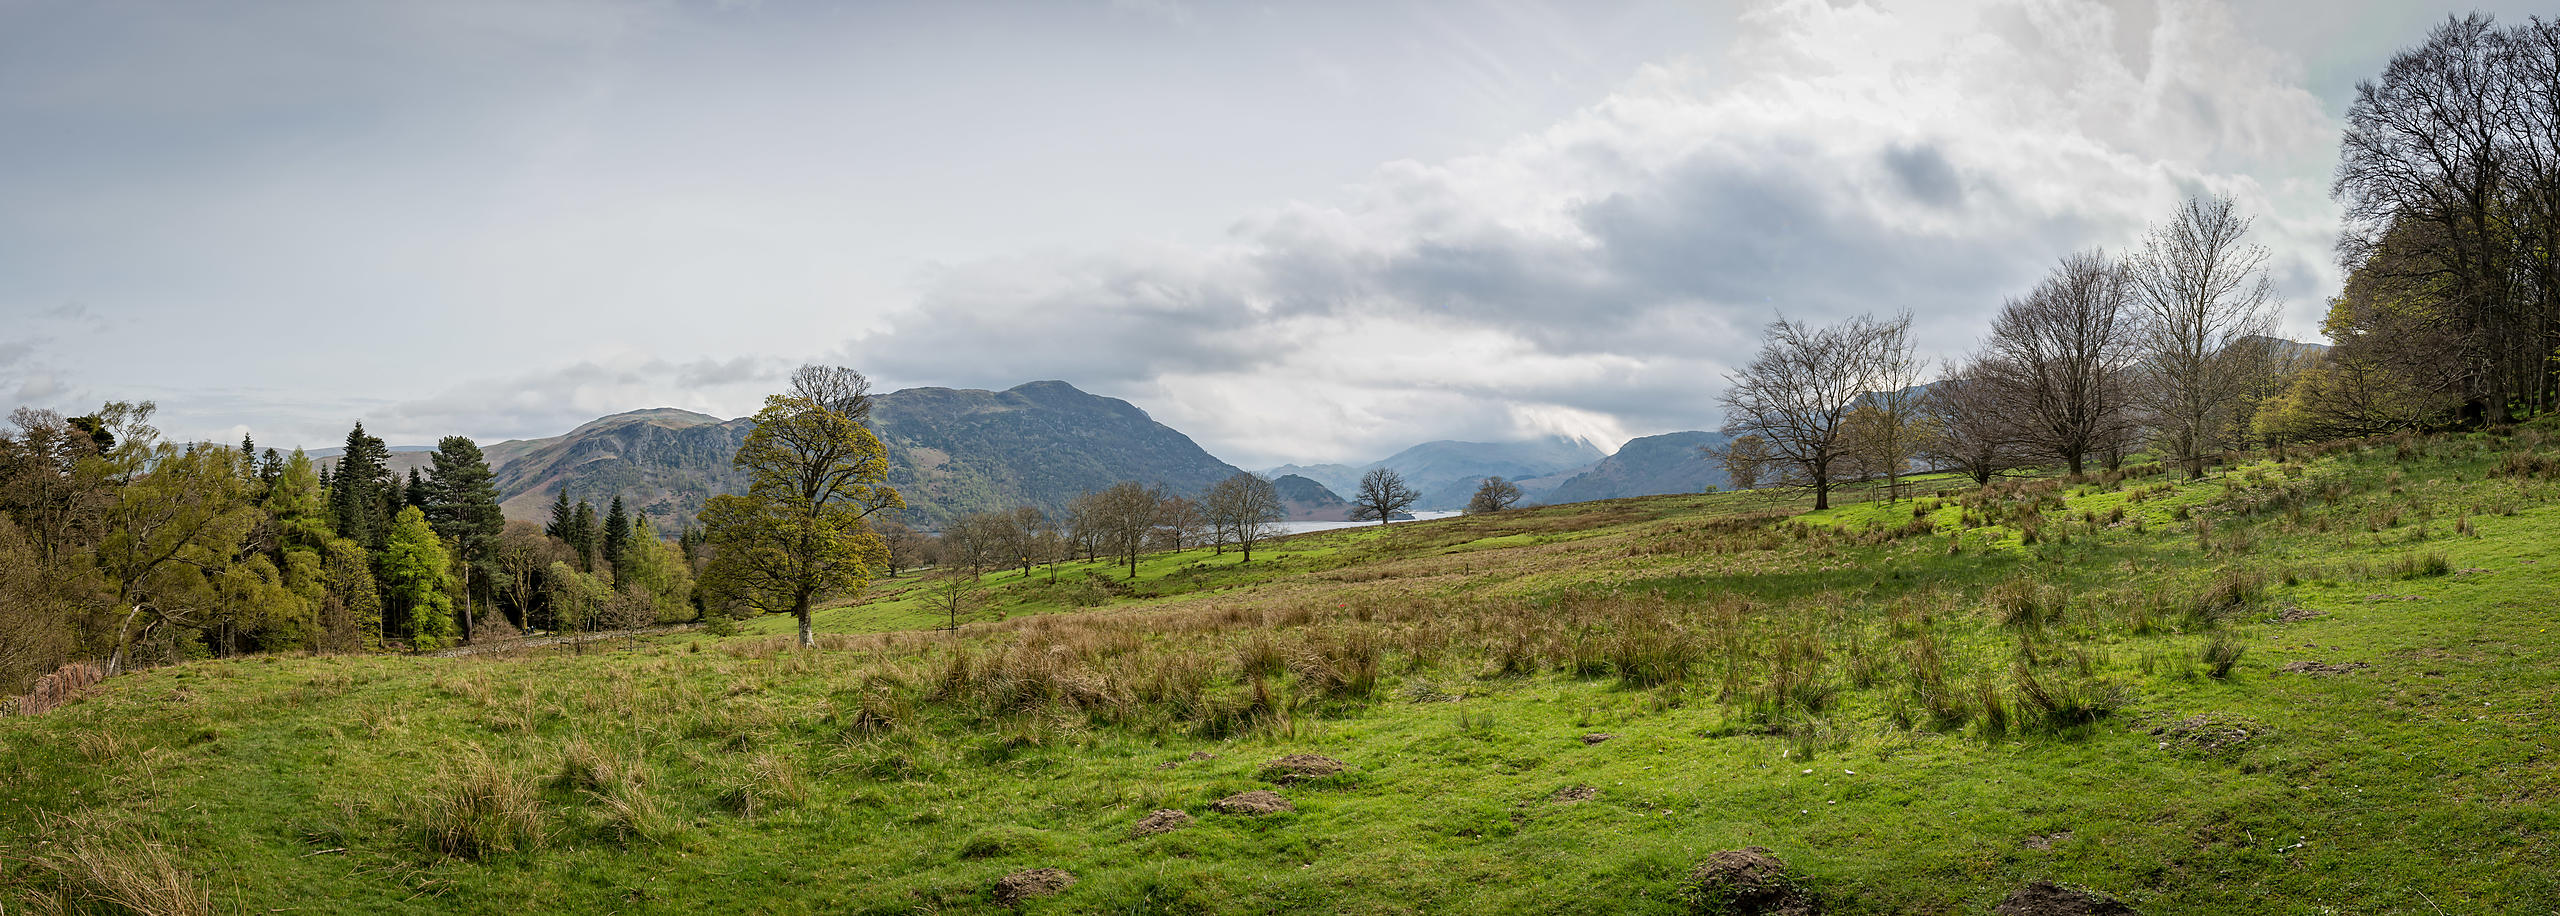 Panoramic Hillside View at Aira Falls, Lake District